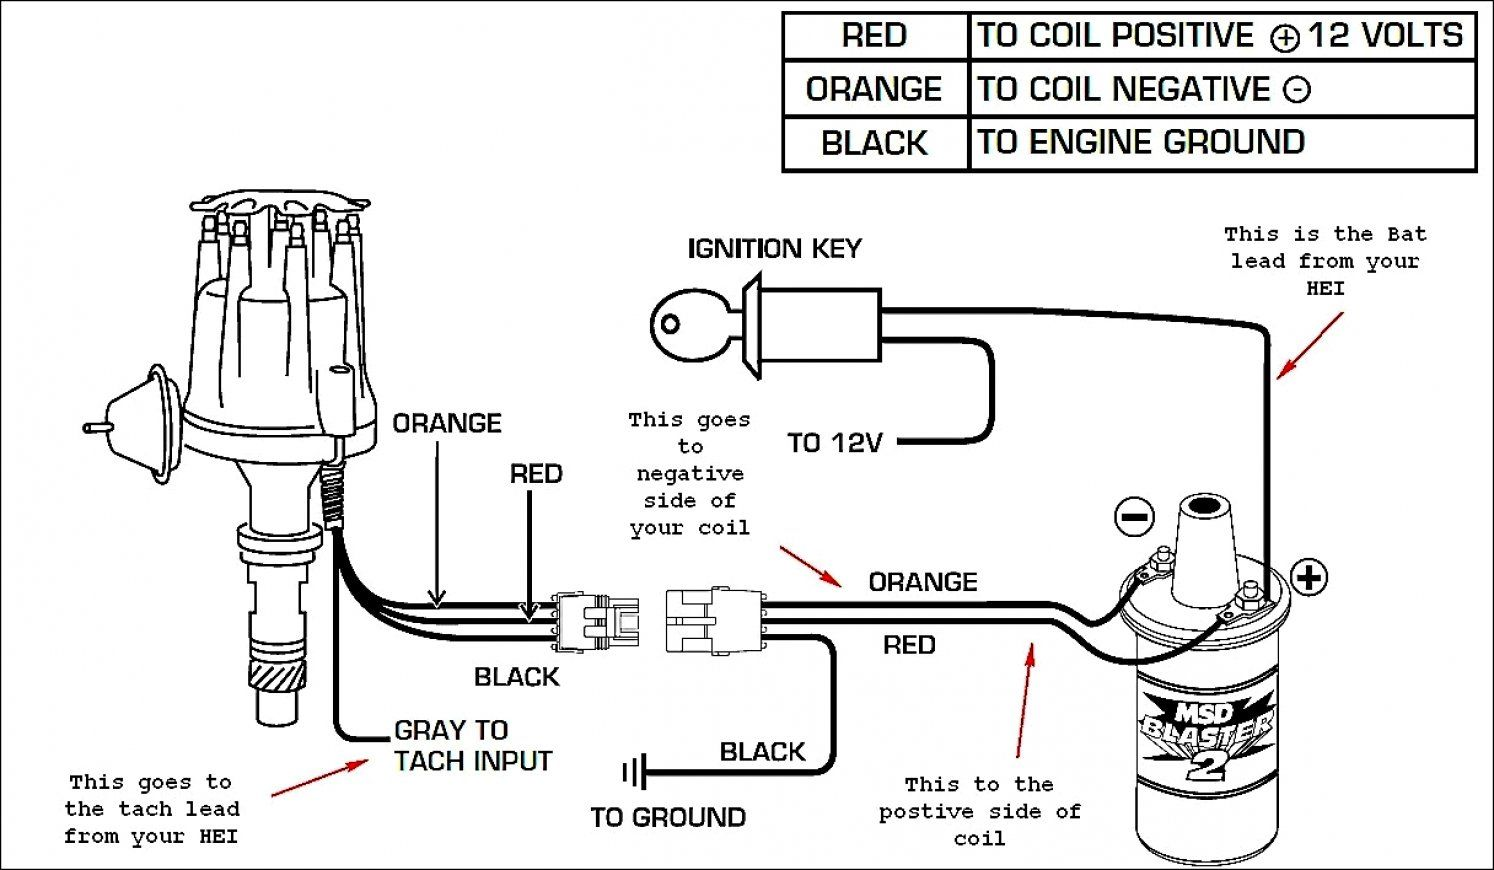 23 Complex Wiring Diagram Online For You Https Bacamajalah Com 23 Complex Wiring Diagram Online For You Ignition Coil Diagram Online Electrical Diagram